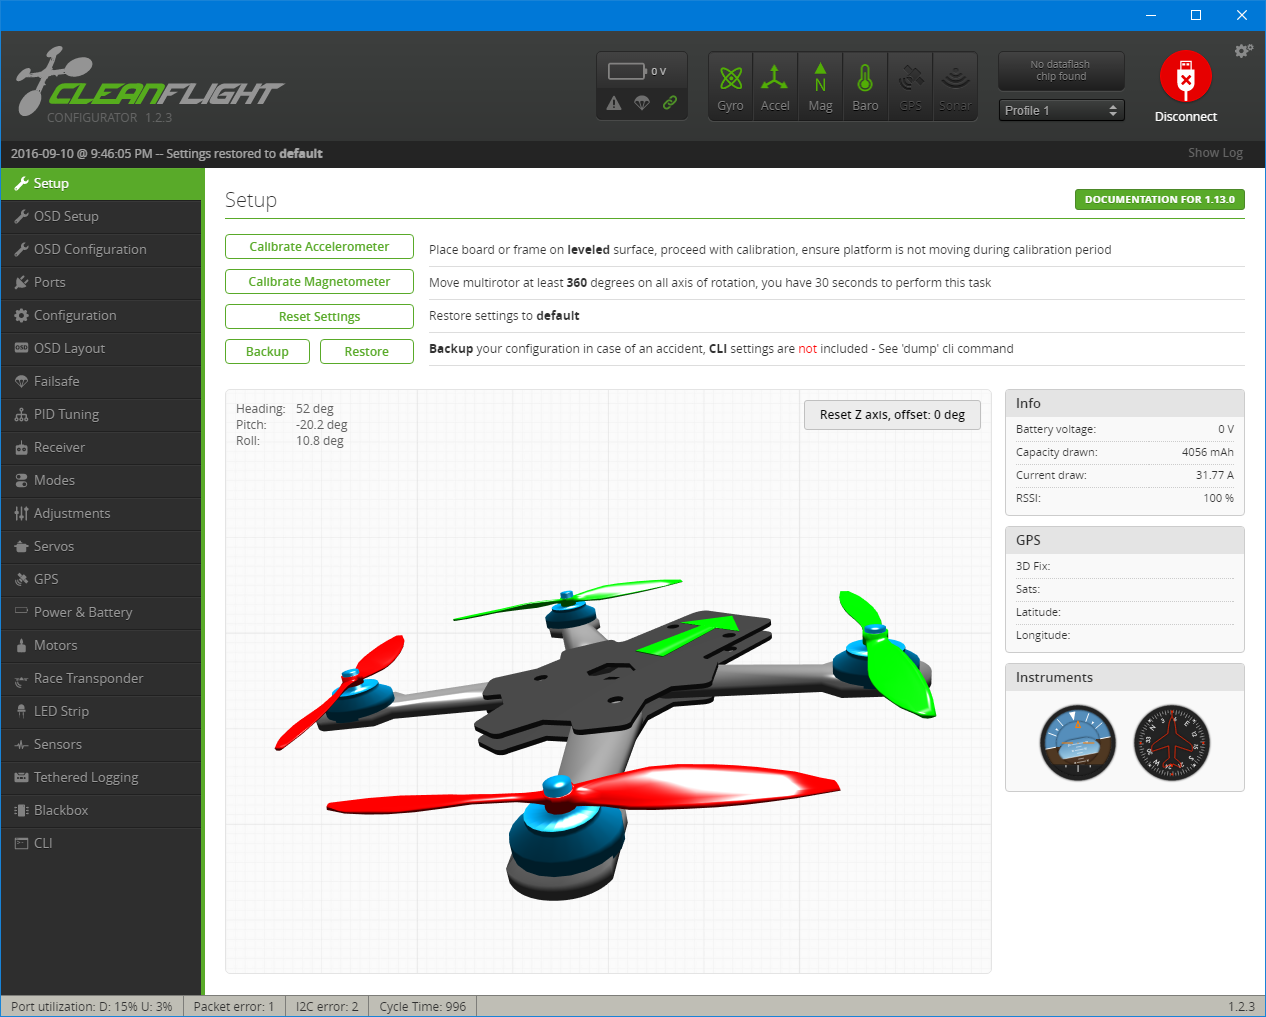 Seriously Pro Racing Spracingf3 Flight Controller Cc3d Wiring Diagram Free Picture Cleanflight Configurator